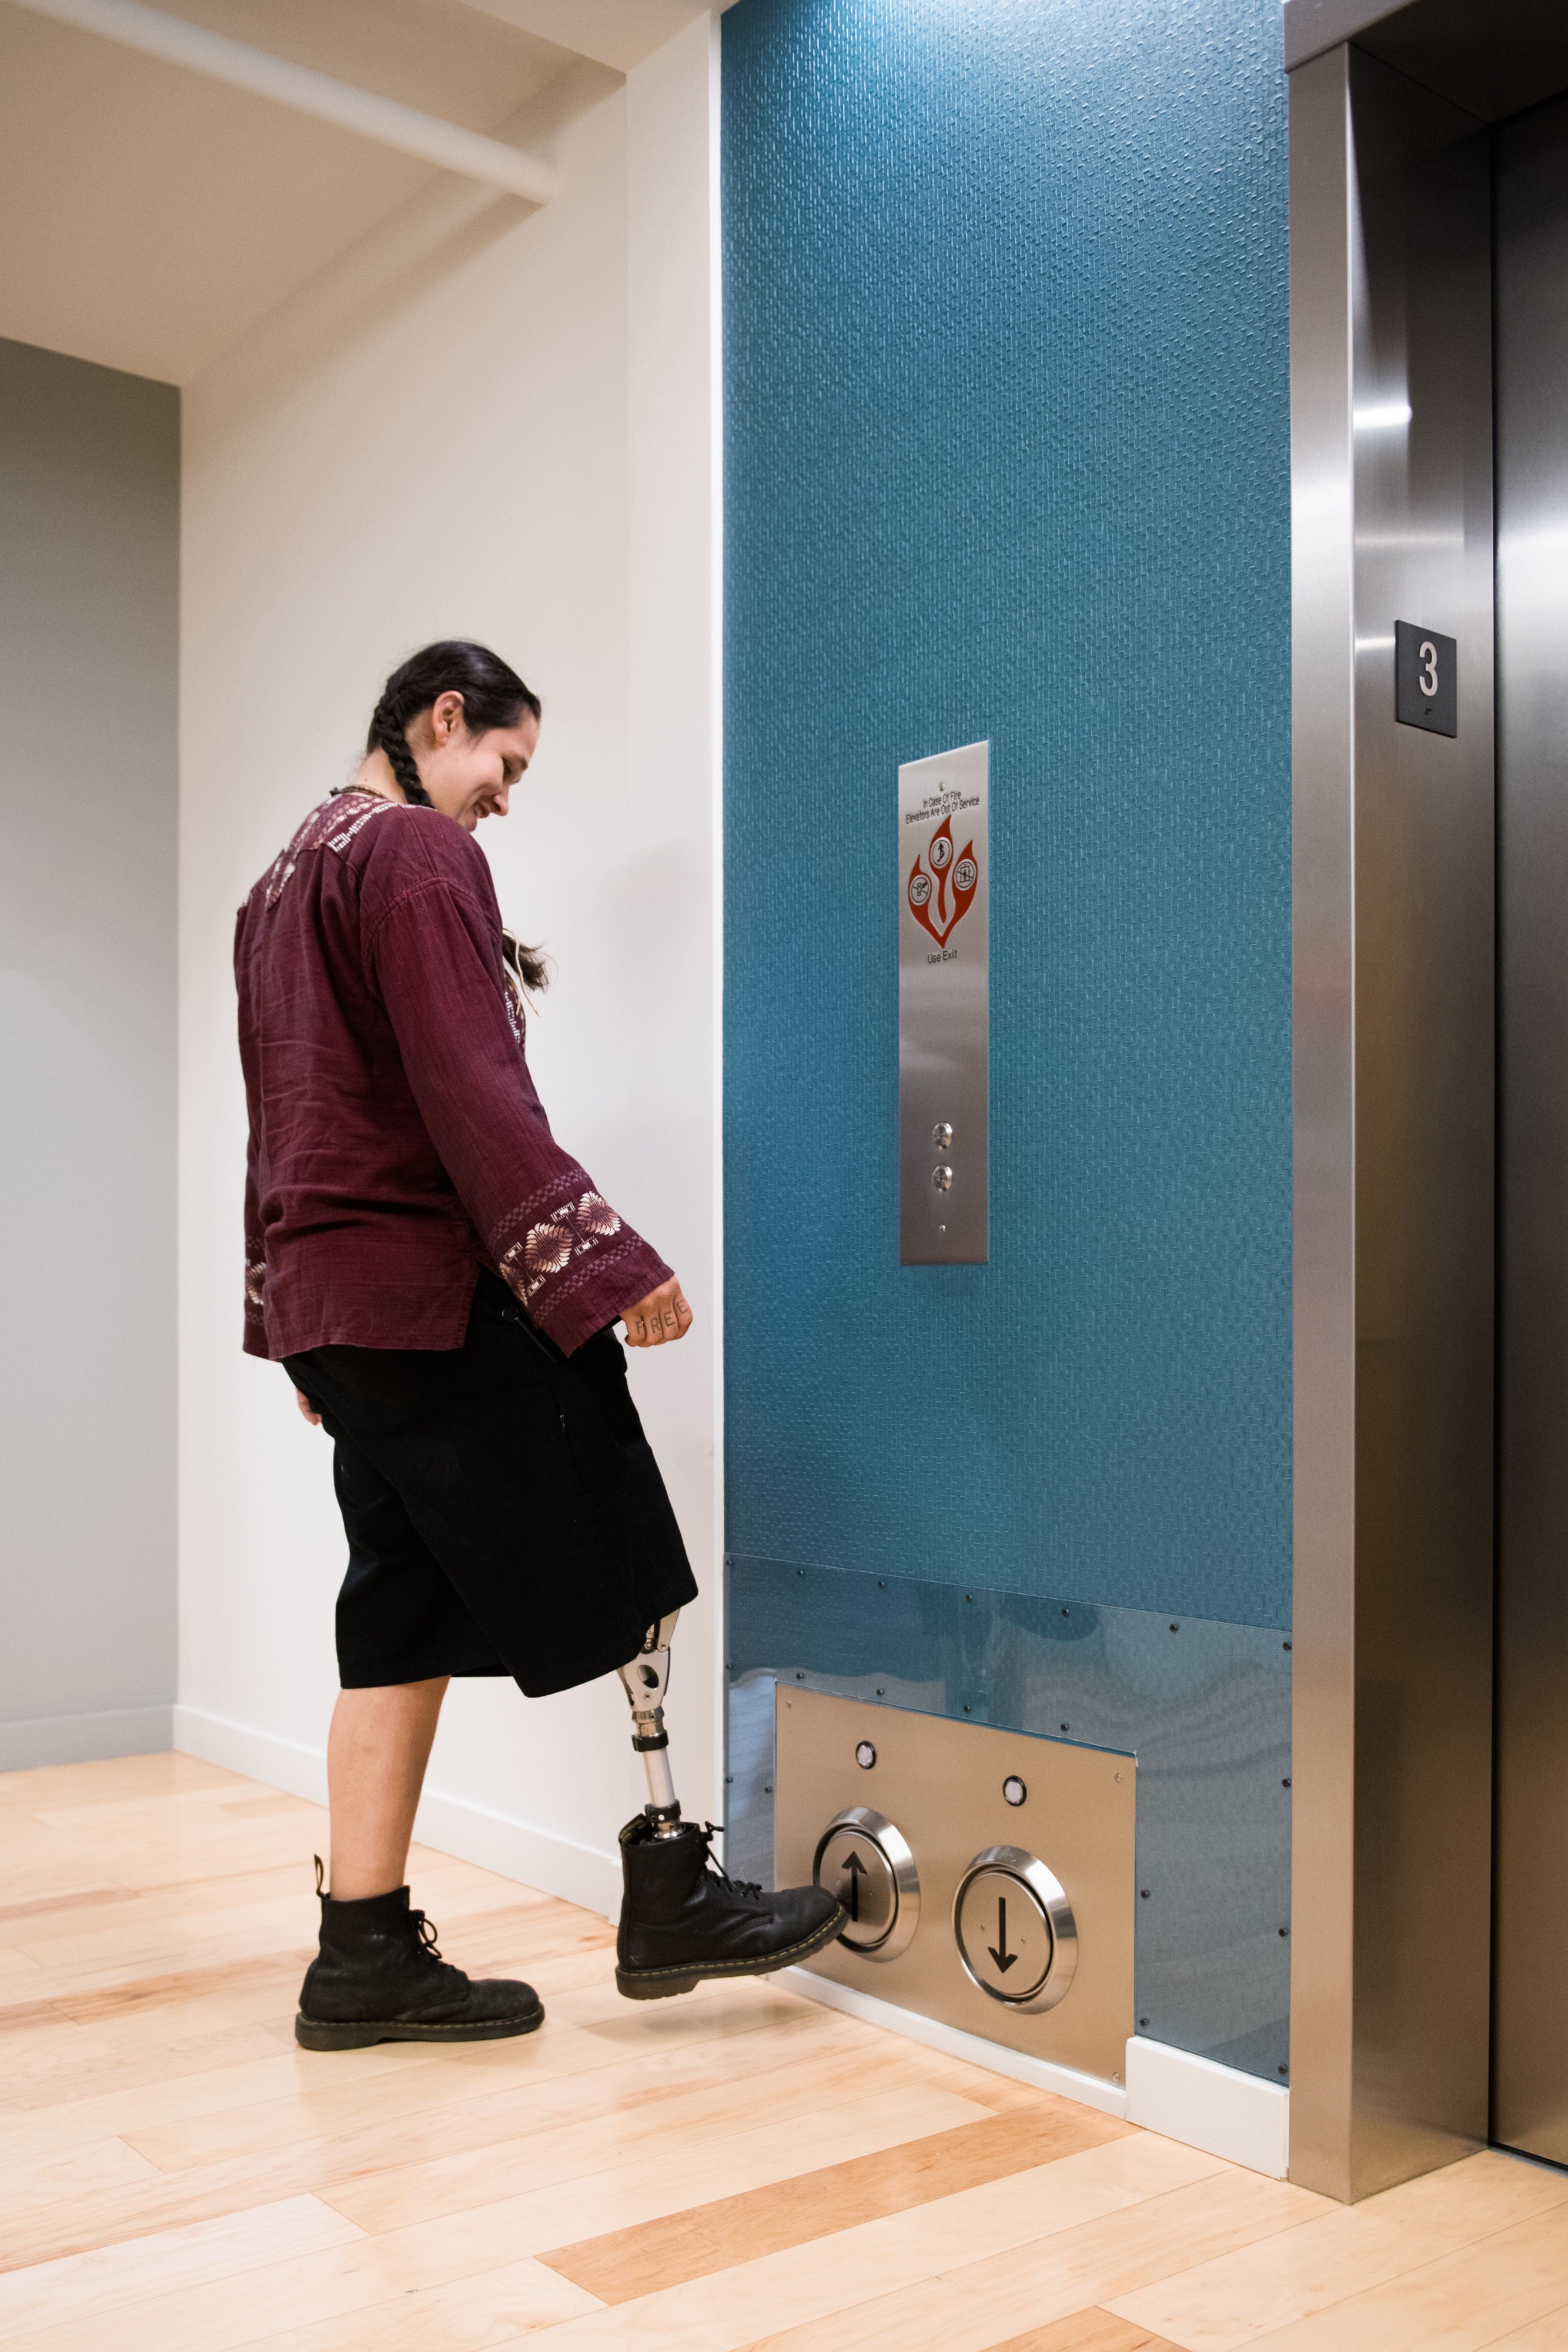 Person pushing UDL Elevator down arrow